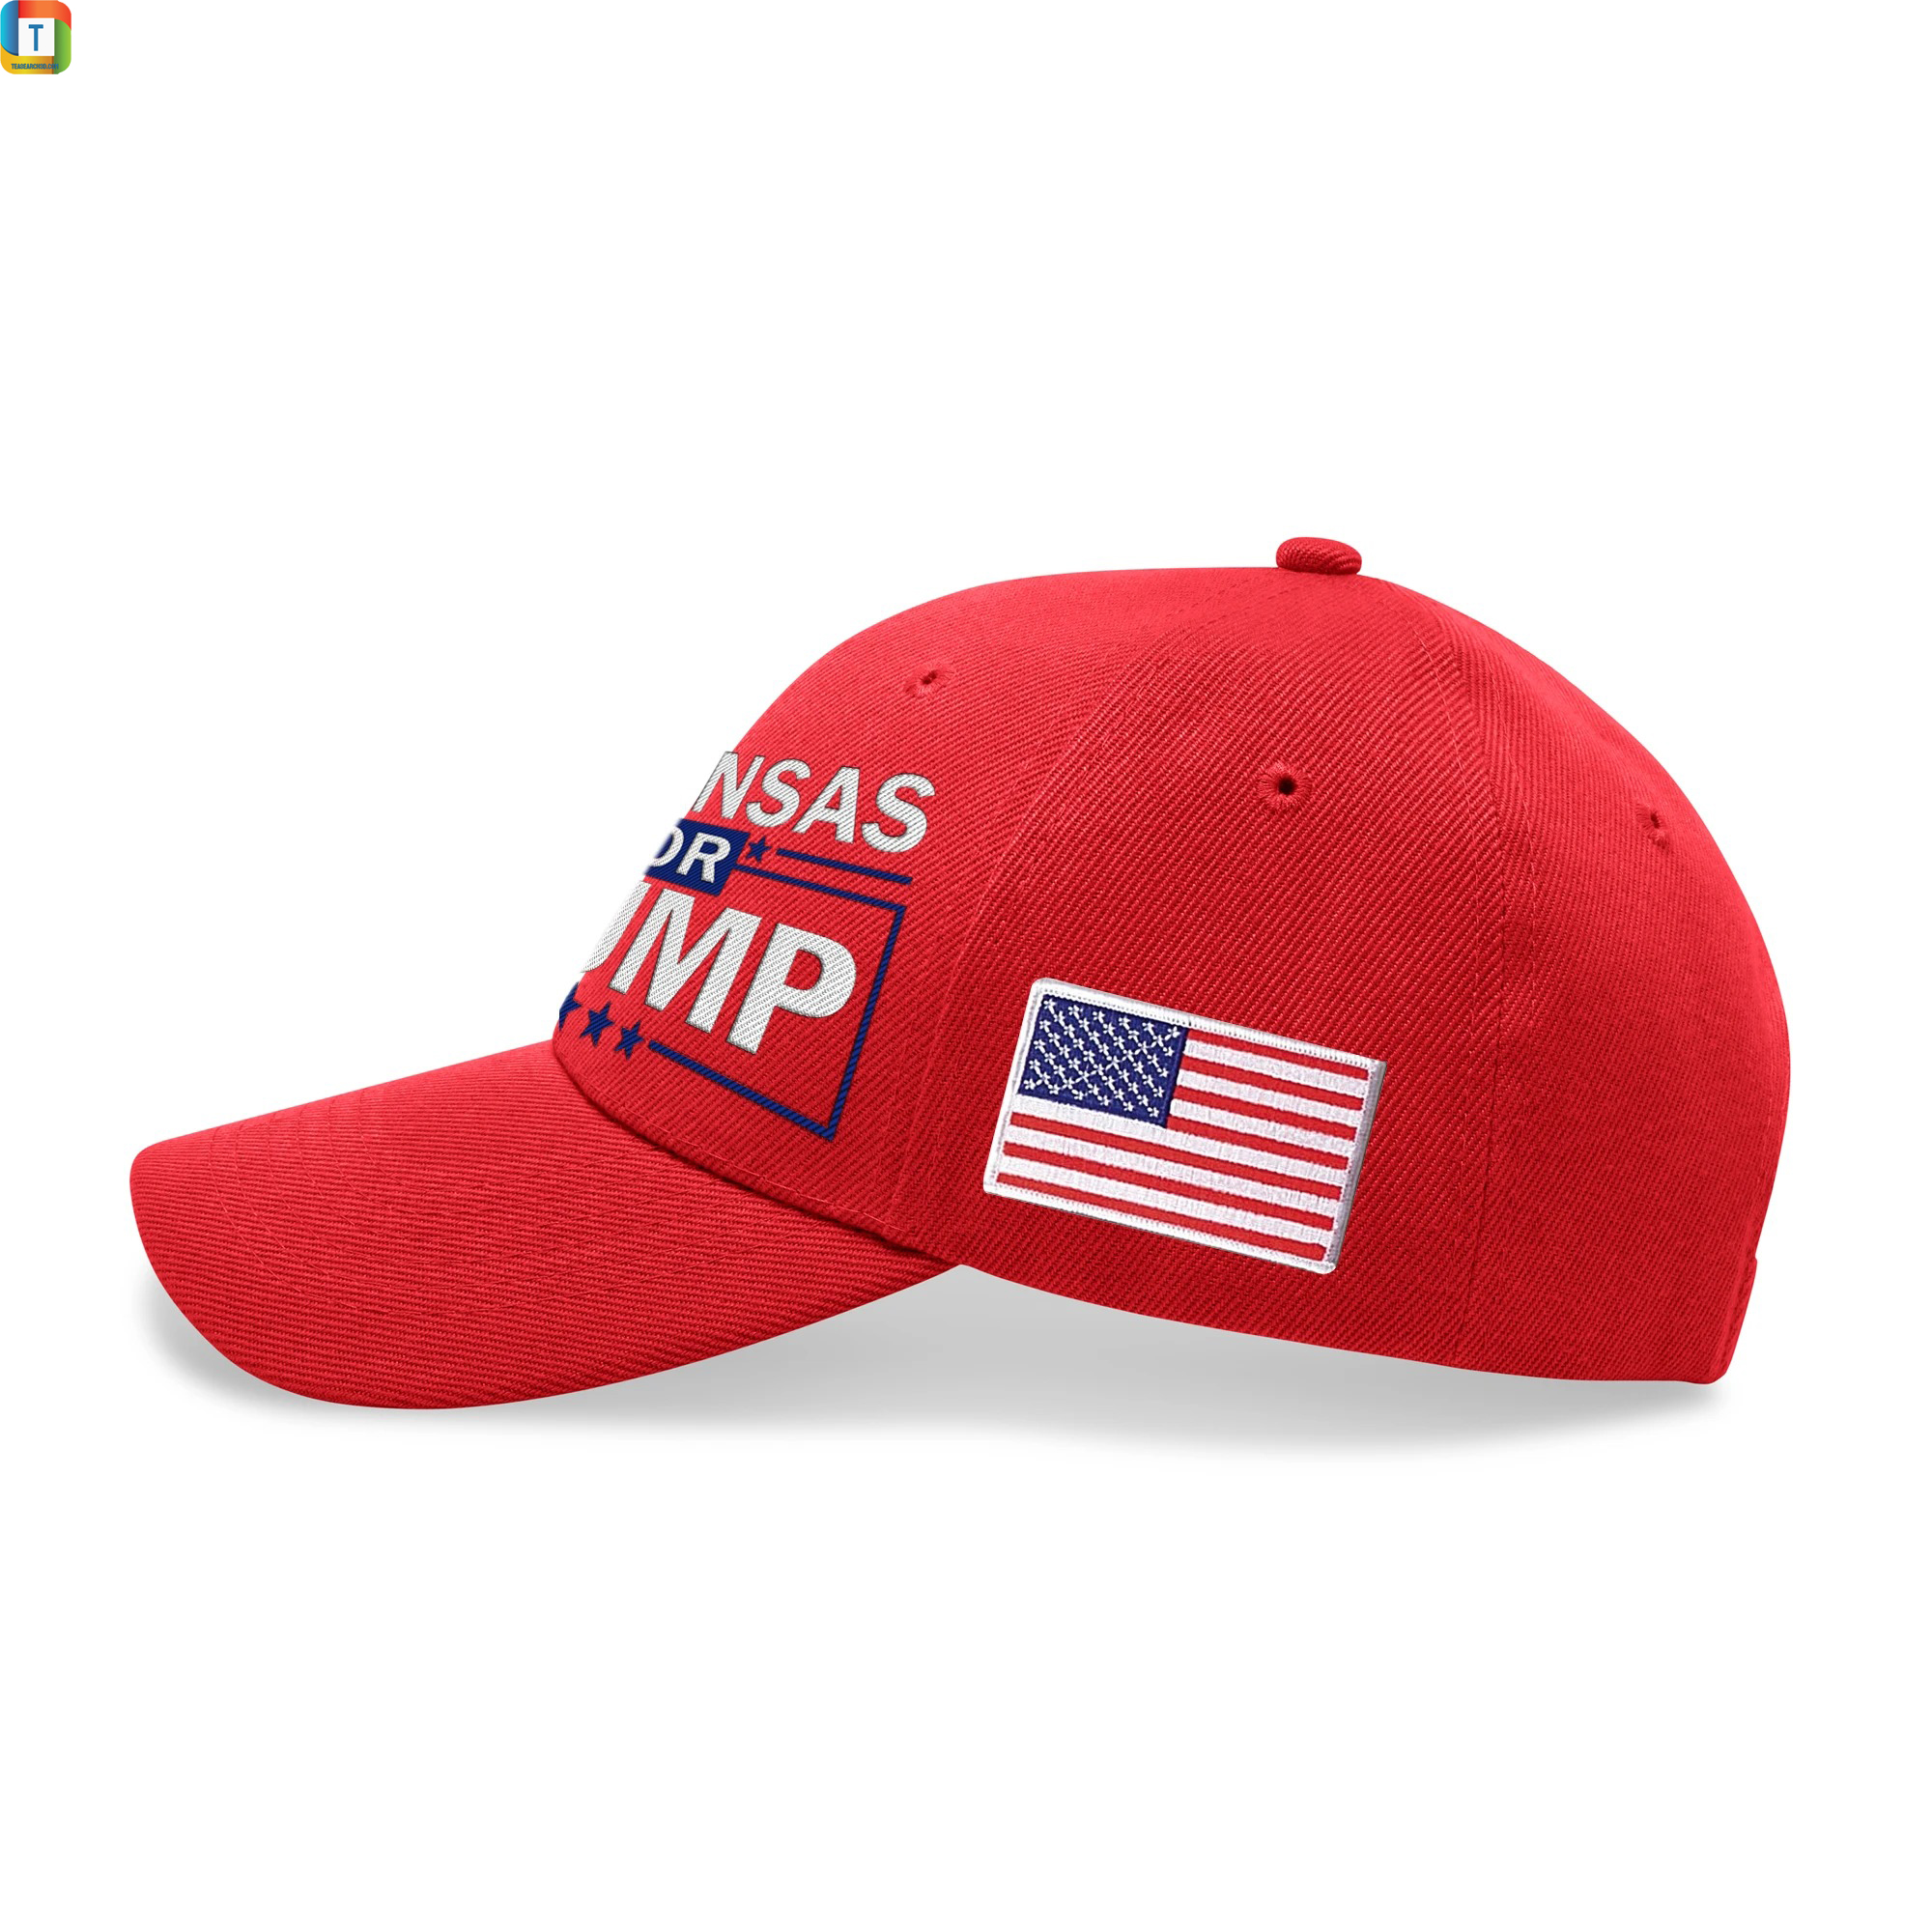 Arkansas For Trump Embroidered Hat 1